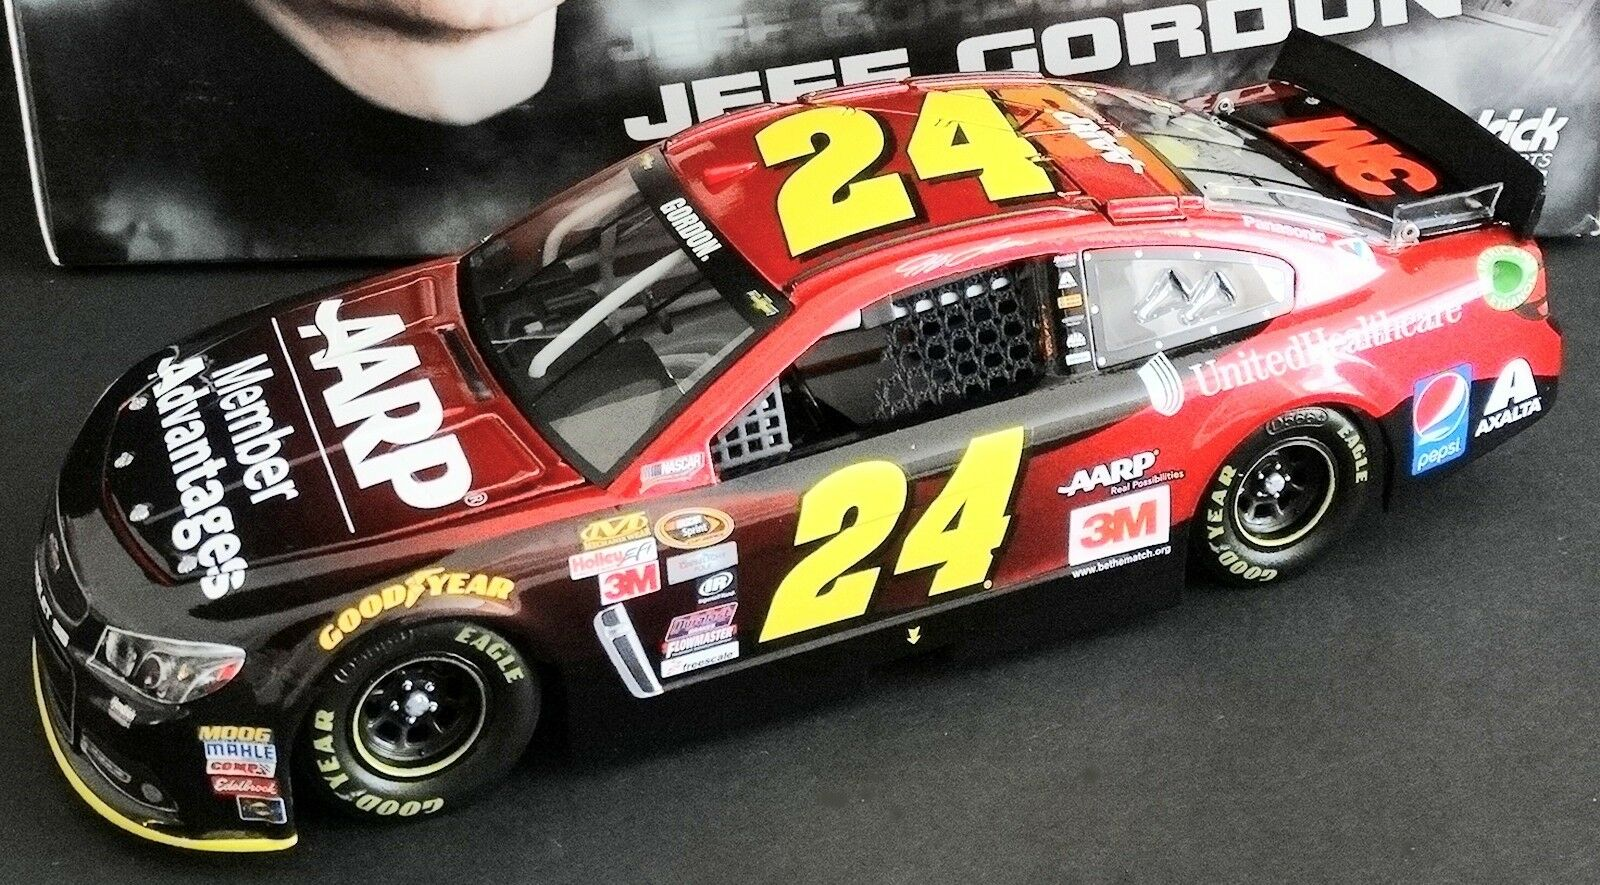 Jeff Gordon  24 Aarp Miembro Advantages 1 24 Action Action Action 2015 Chevy Ss 528 1525 9236b4